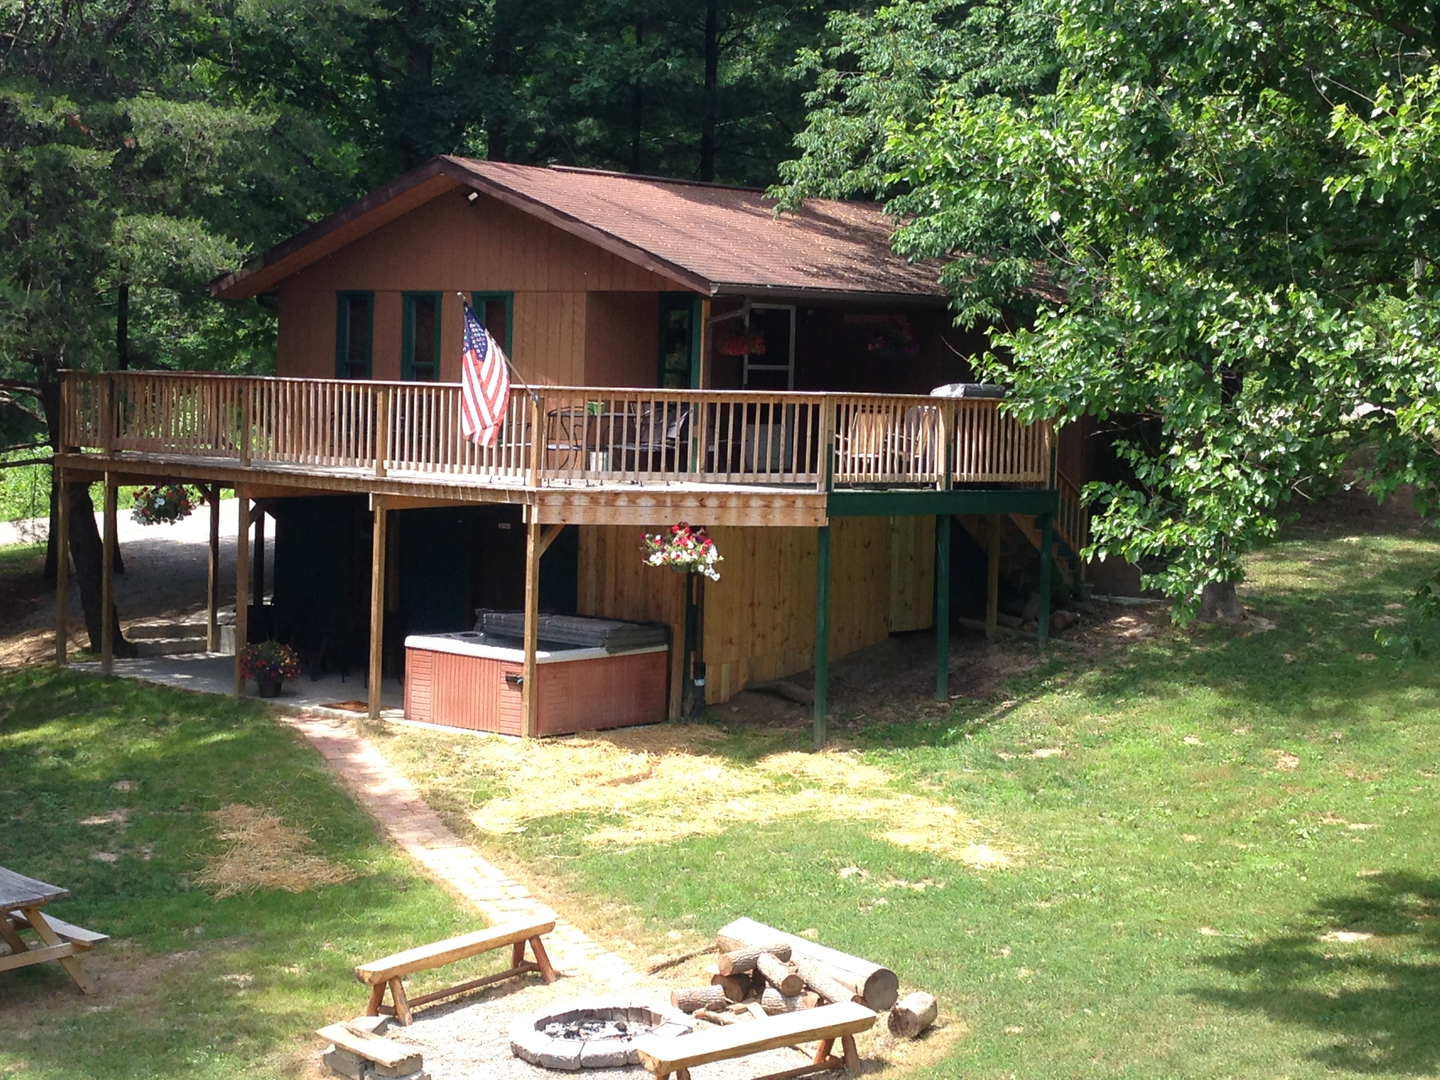 luxury ga near for rentals in forge cabin pet tn keni friendly cabins cheap ridge lake secluded rent ohio blue pigeon